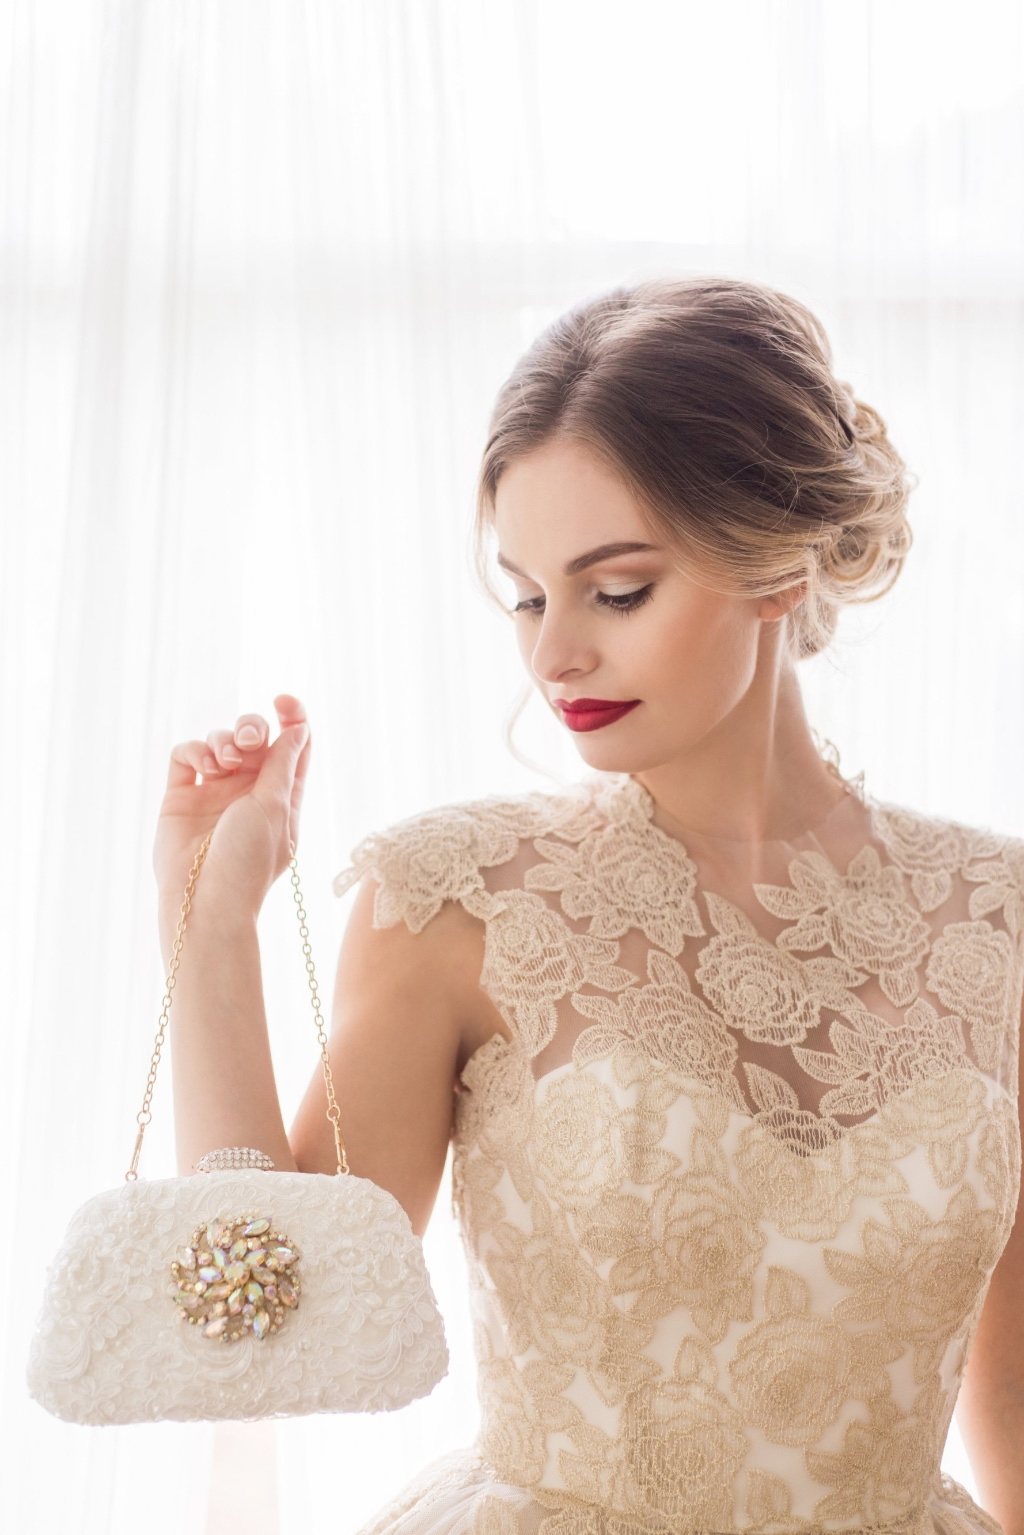 Bridal clutches for the vintage inspired bride.